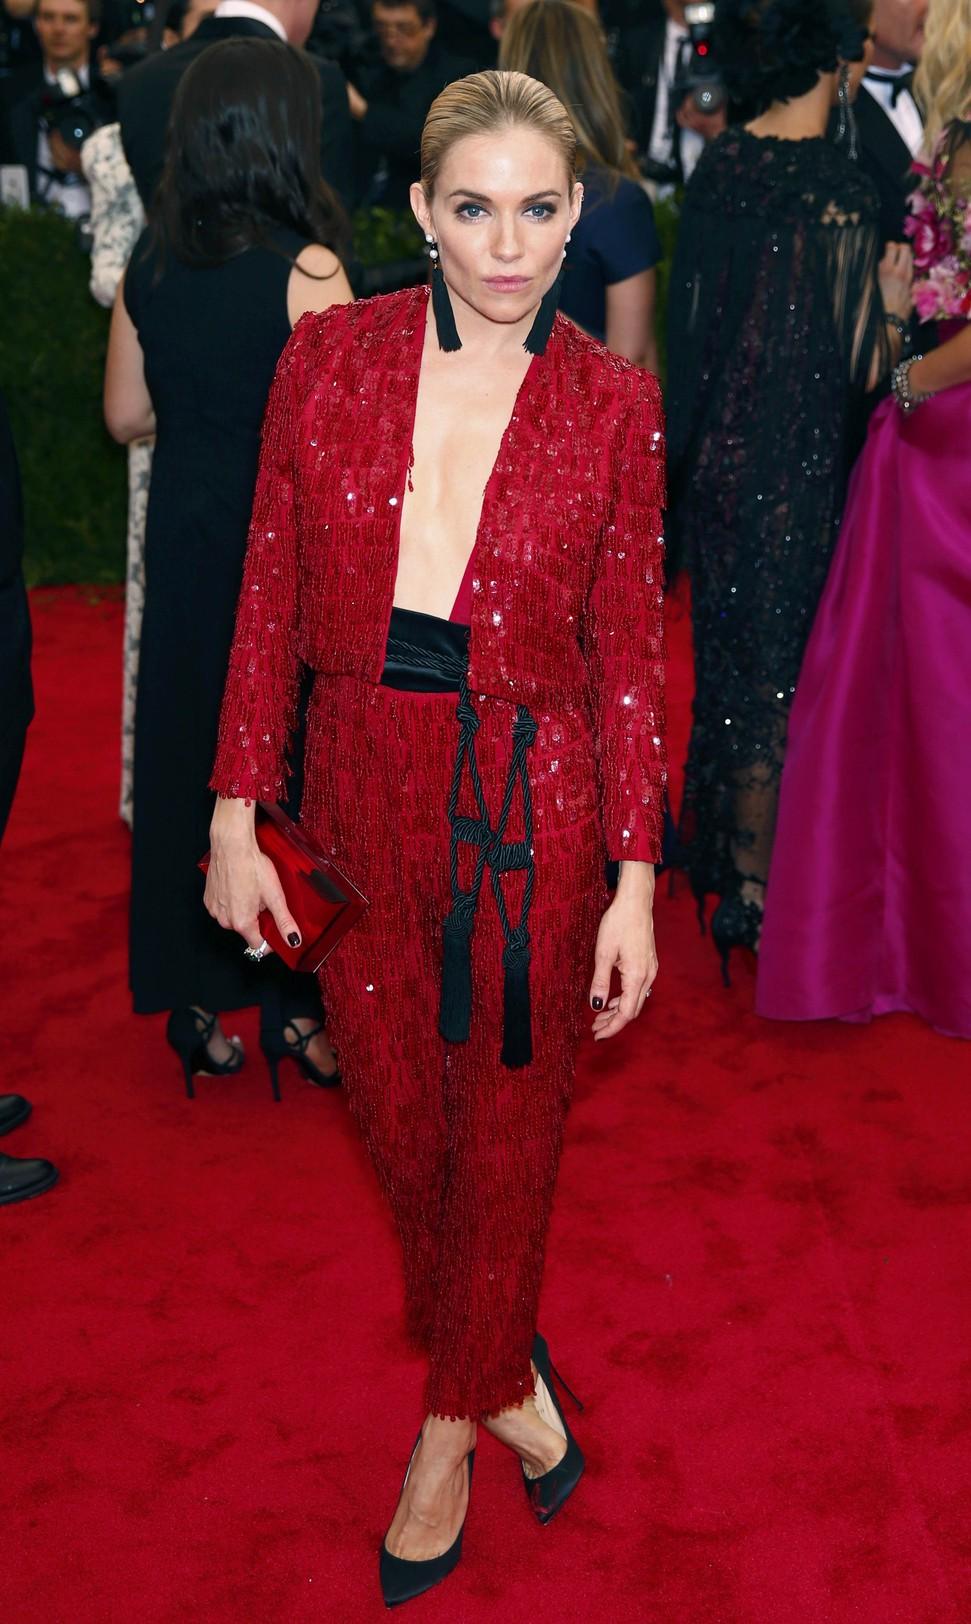 Sienna-Miller-in-Thakoon-at-the-2015-Met-Gala